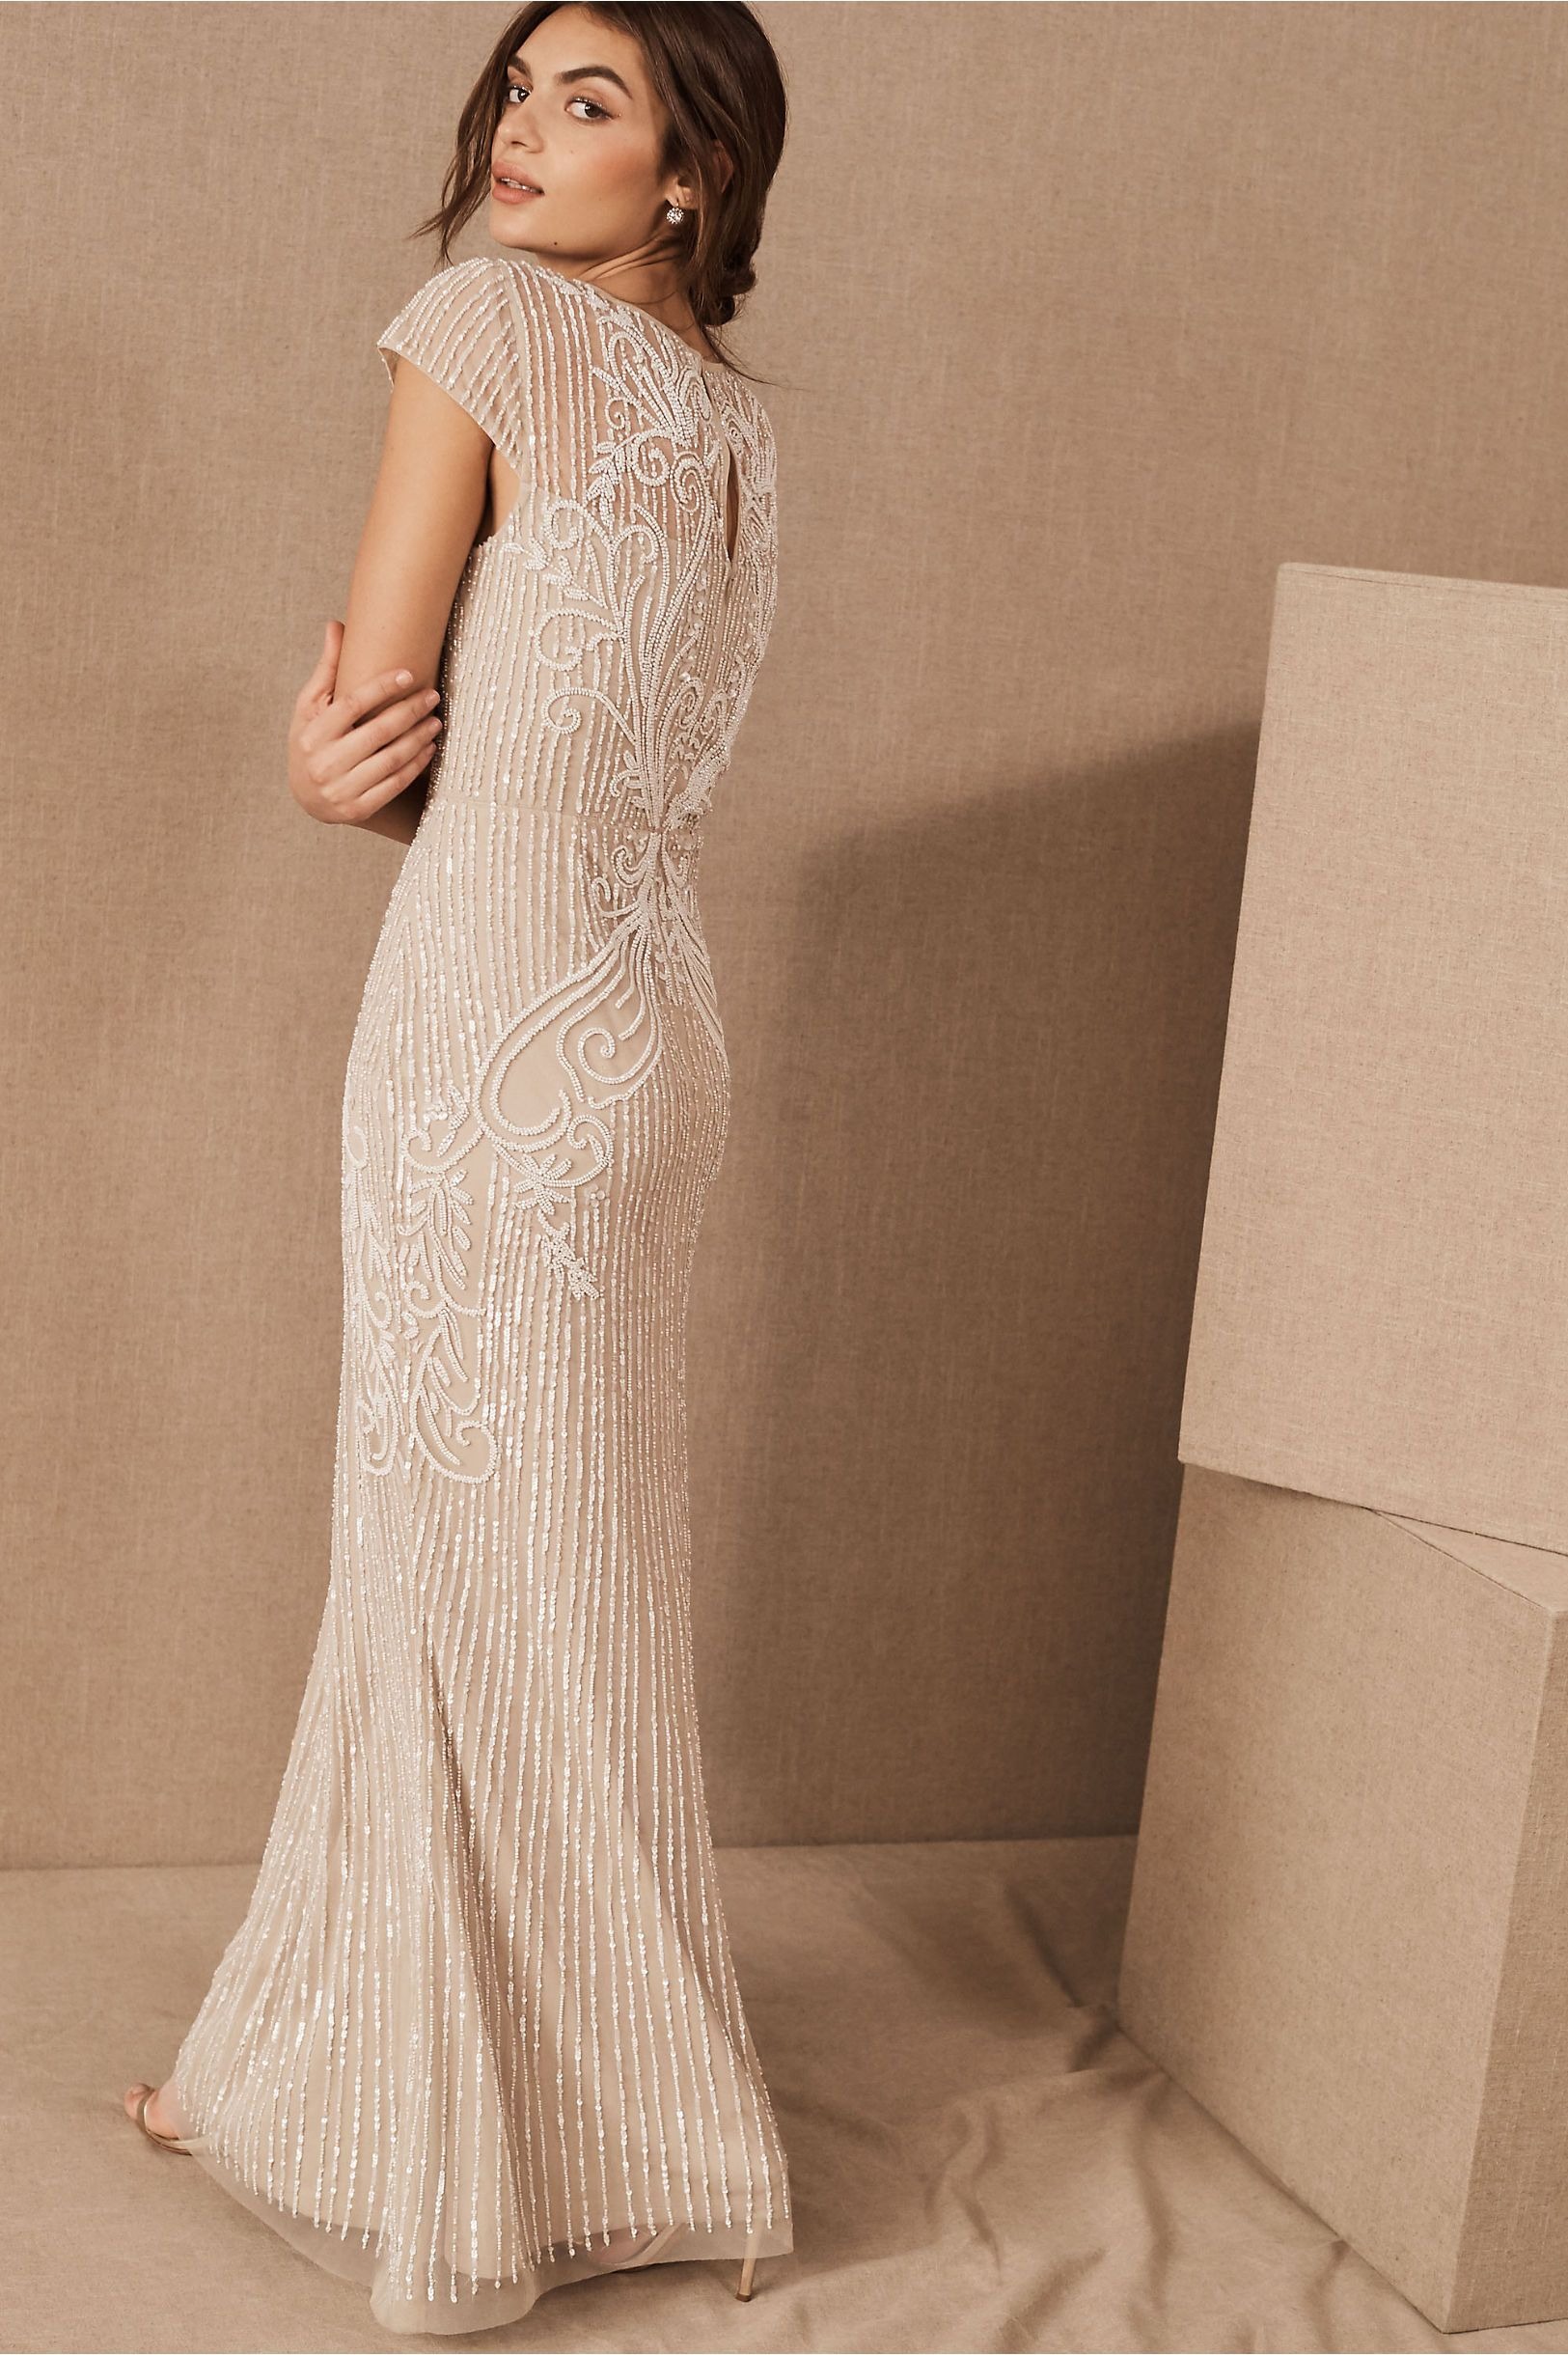 Bhldn Sanders Dress In 2020 Dresses Wedding Dresses Under 500 Maid Of Honour Dresses